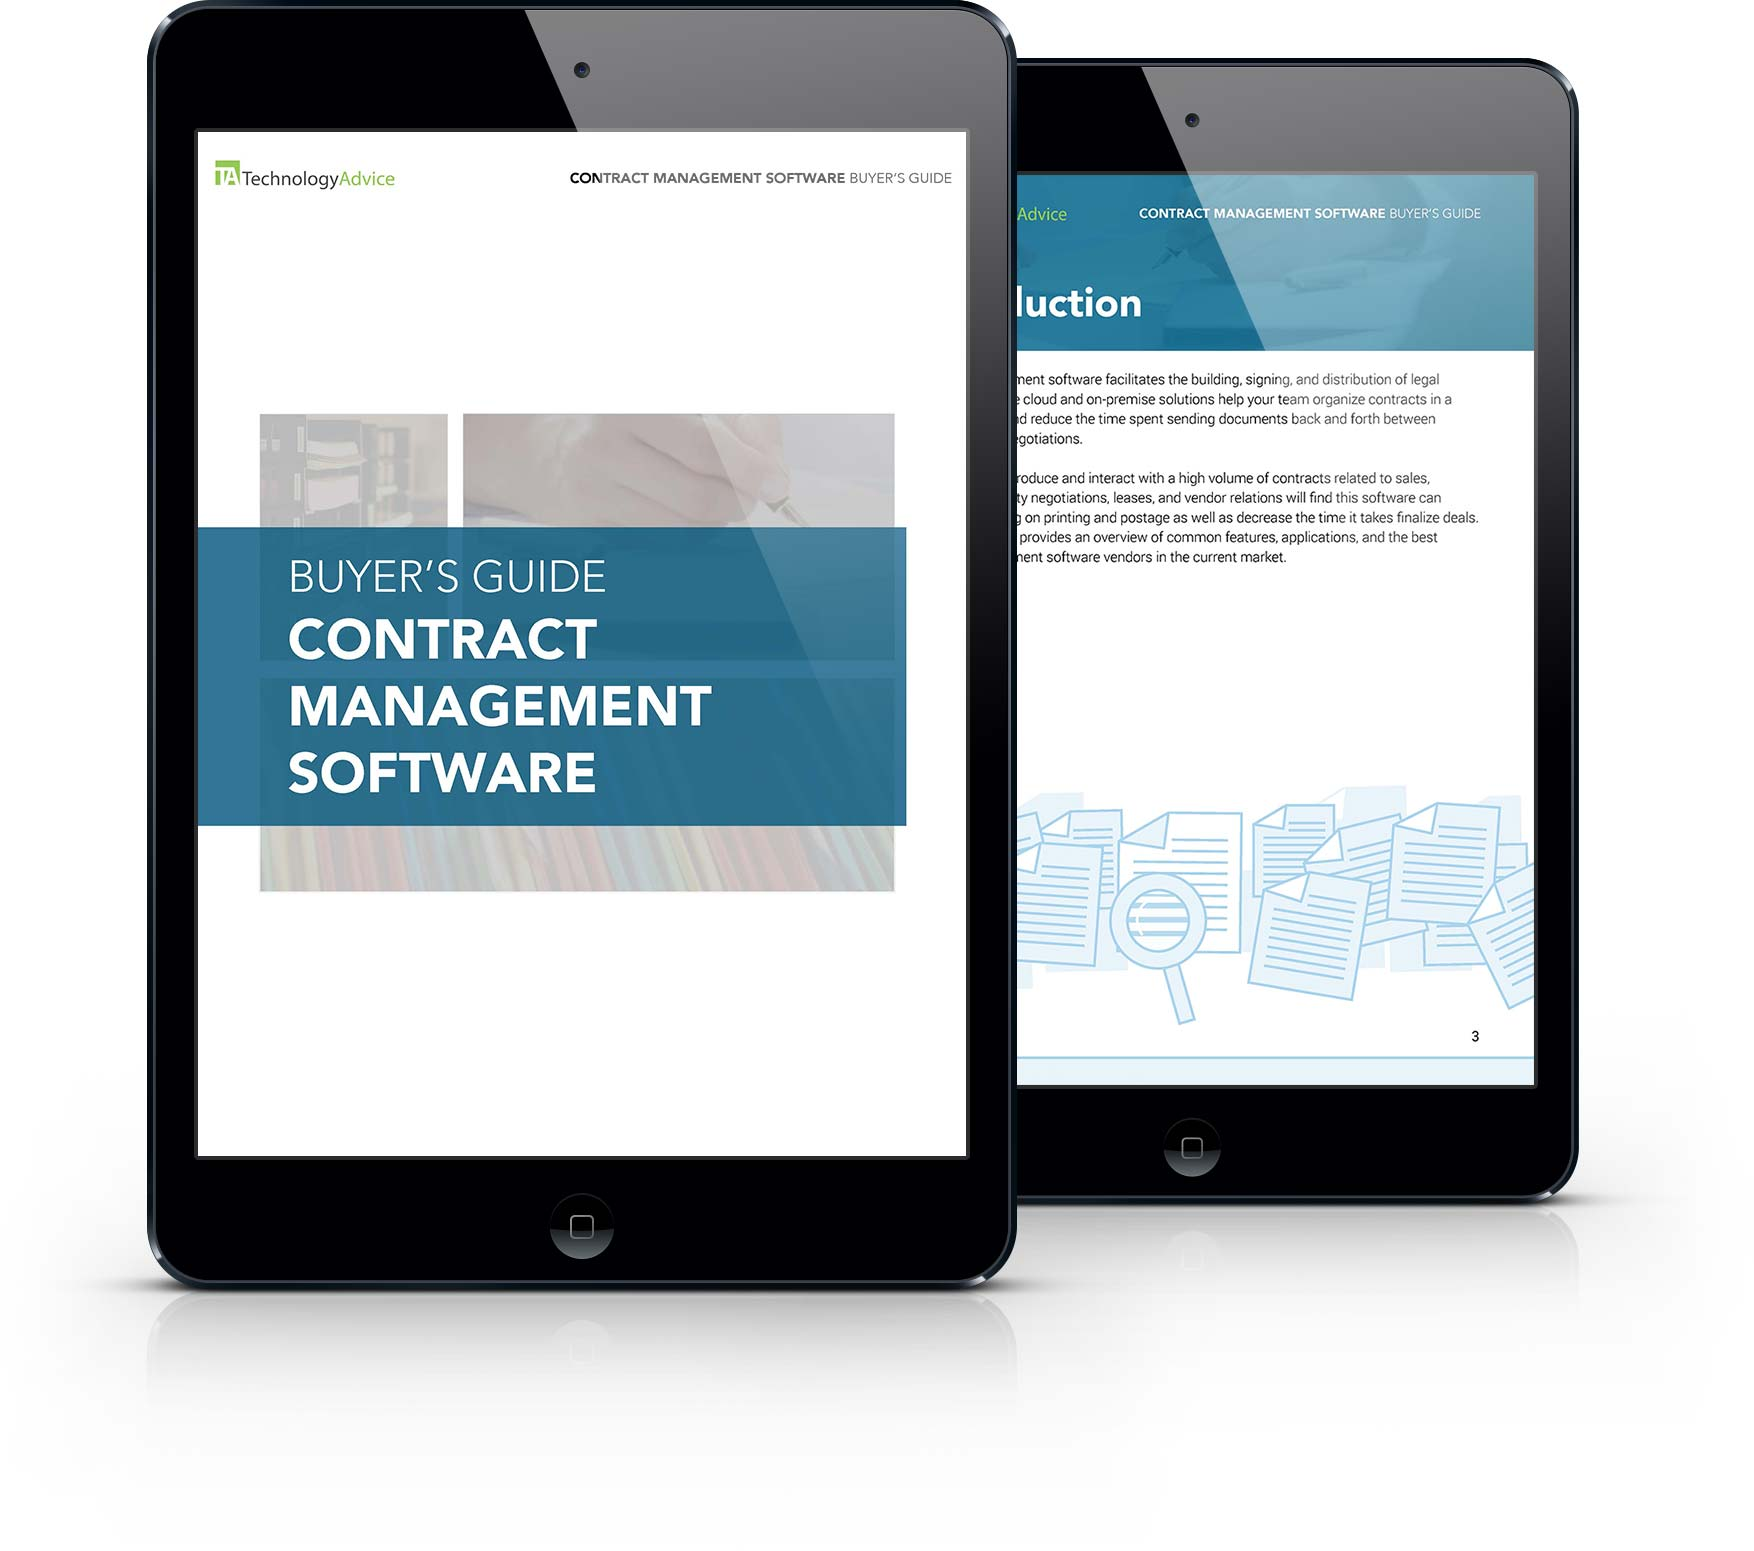 Contract Management Software Buyer's Guide iPad